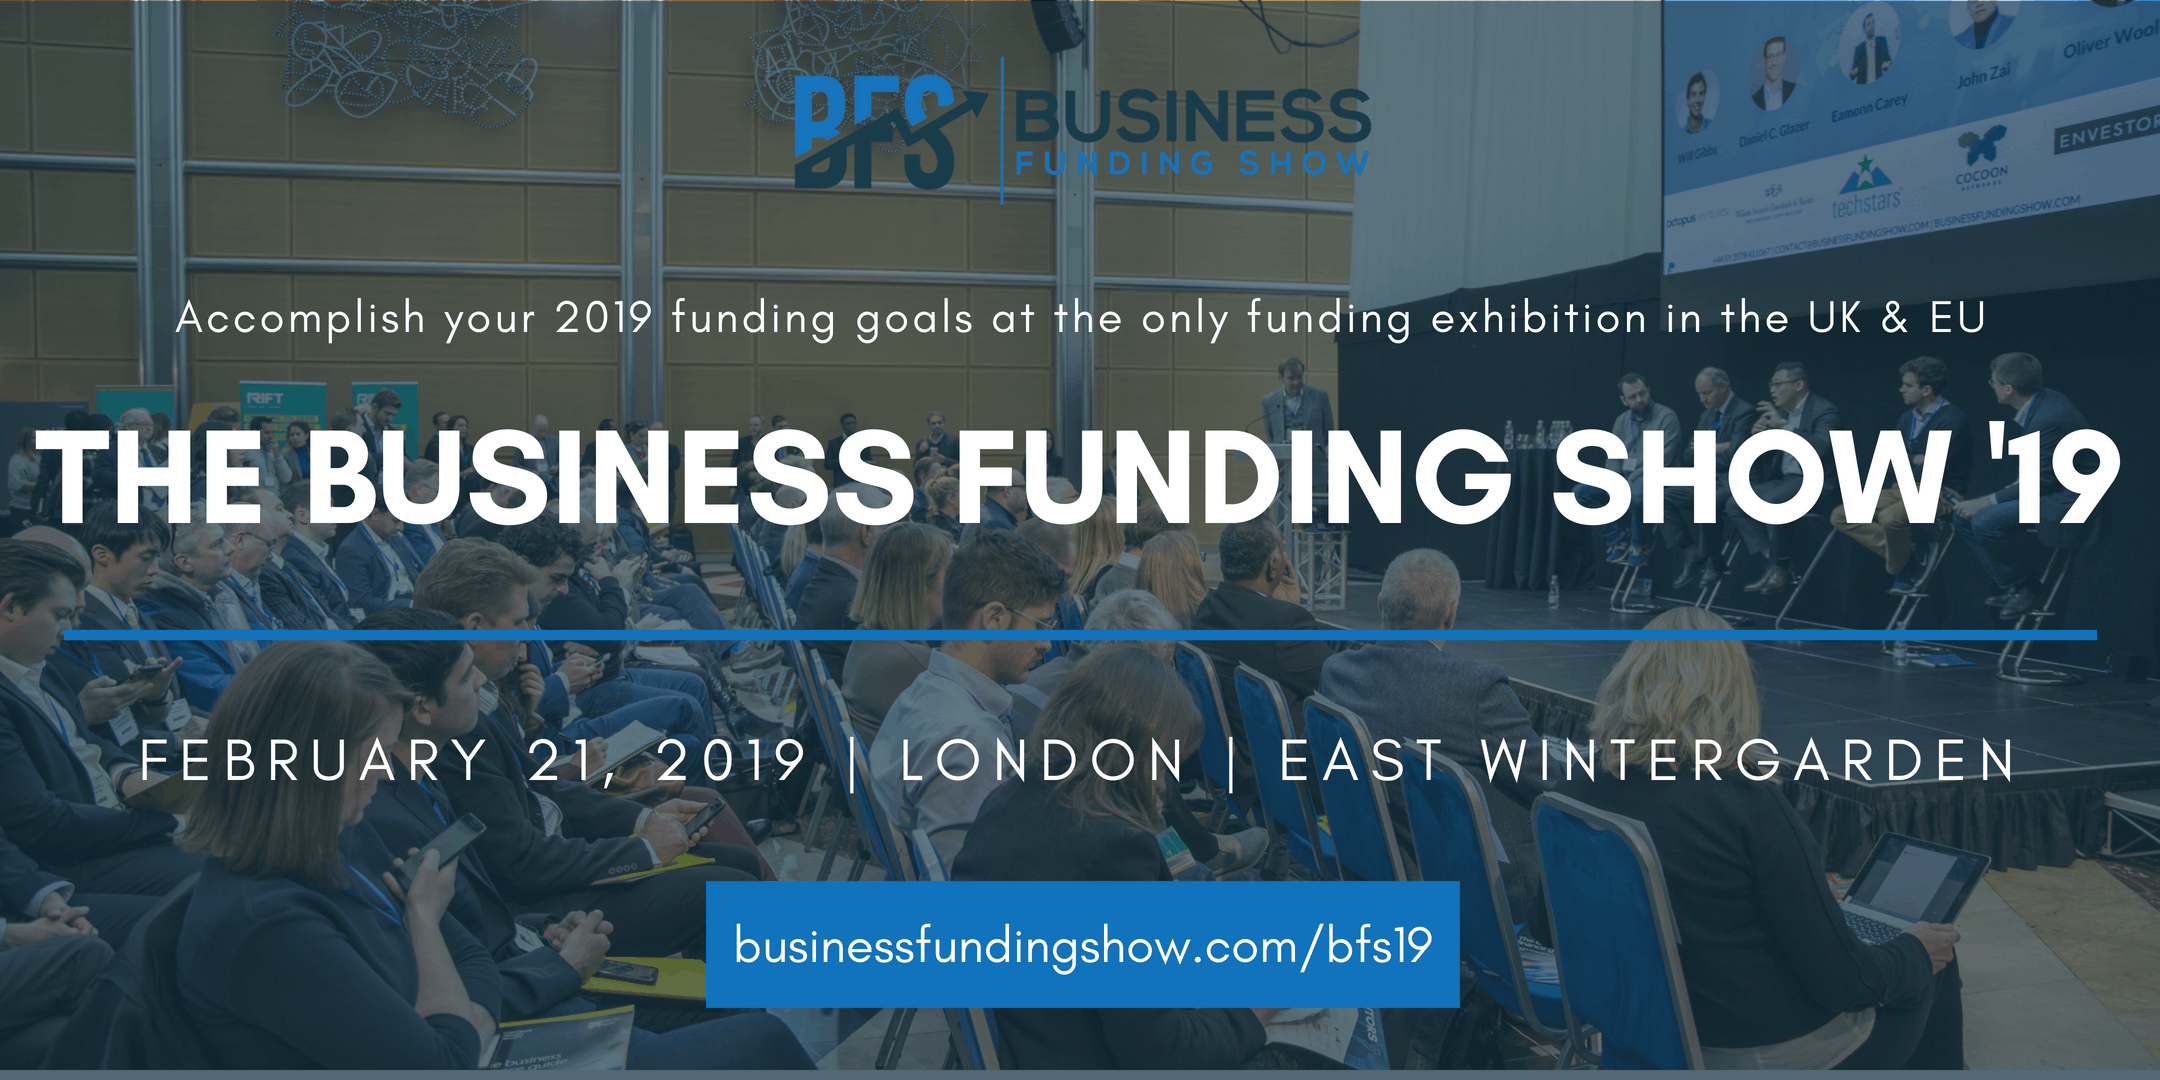 The Business Funding Show 2019